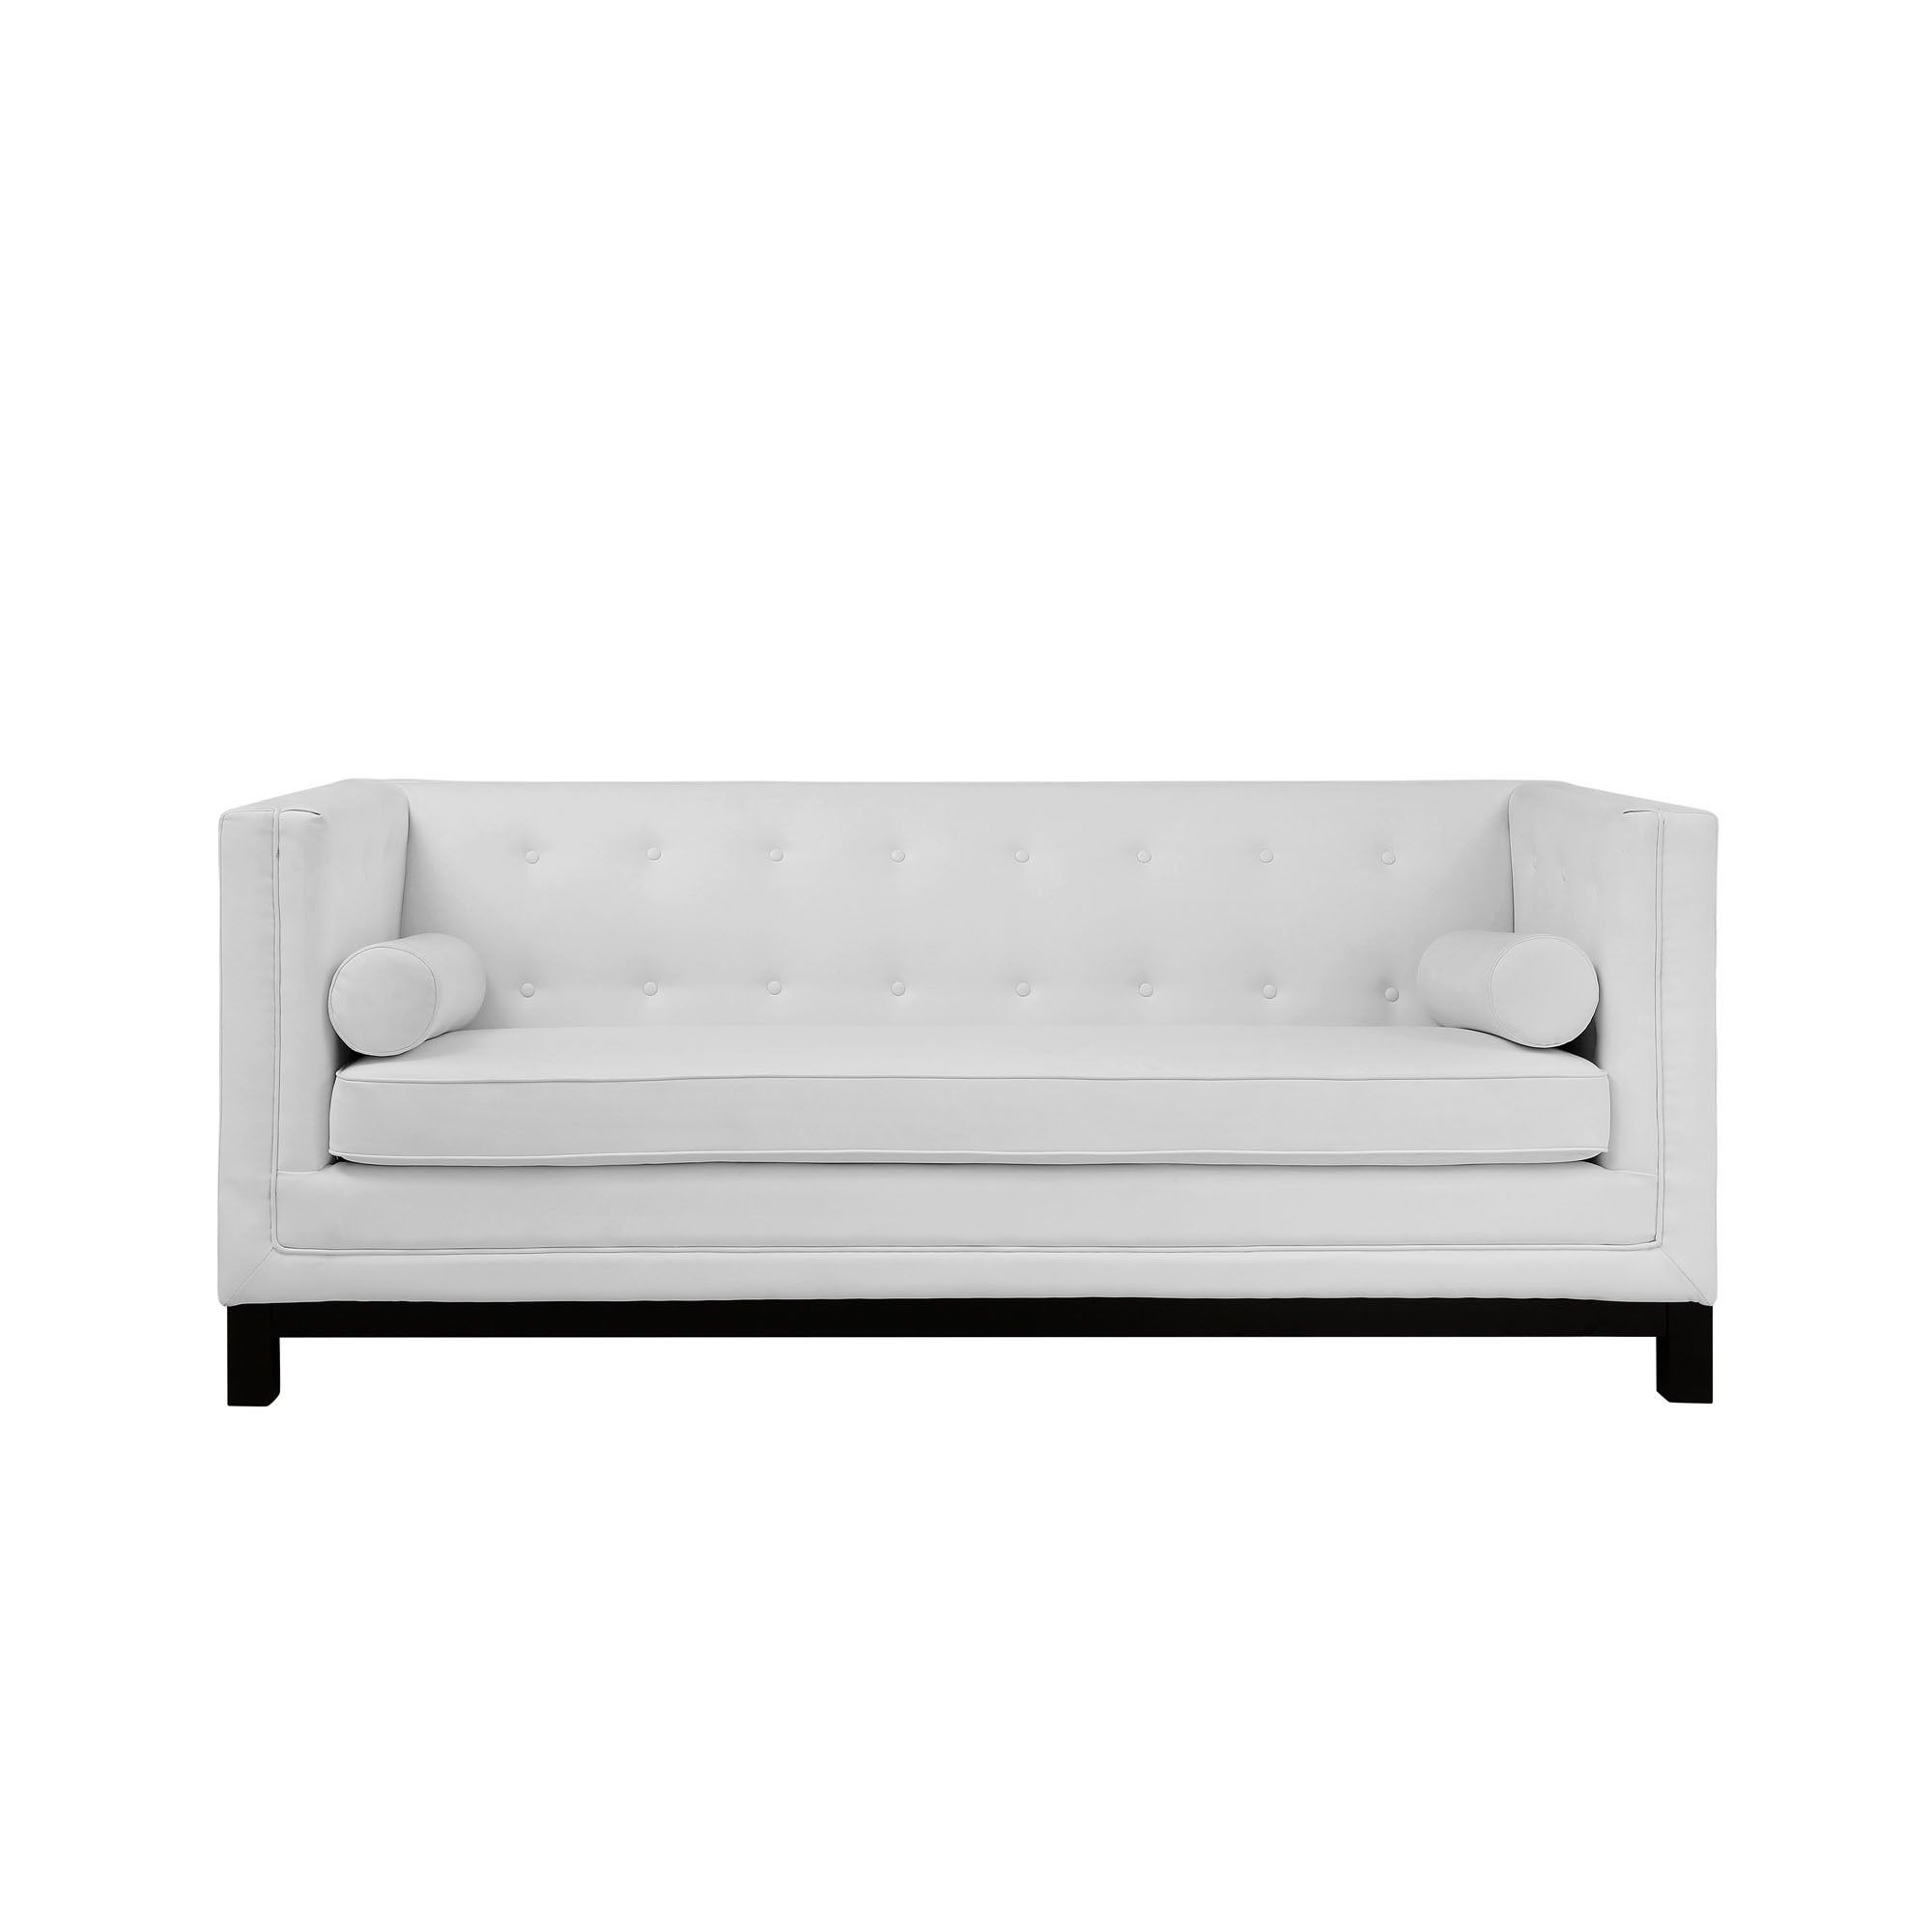 Surprising Imperial Bonded Leather Sofa White Modway Products Pdpeps Interior Chair Design Pdpepsorg